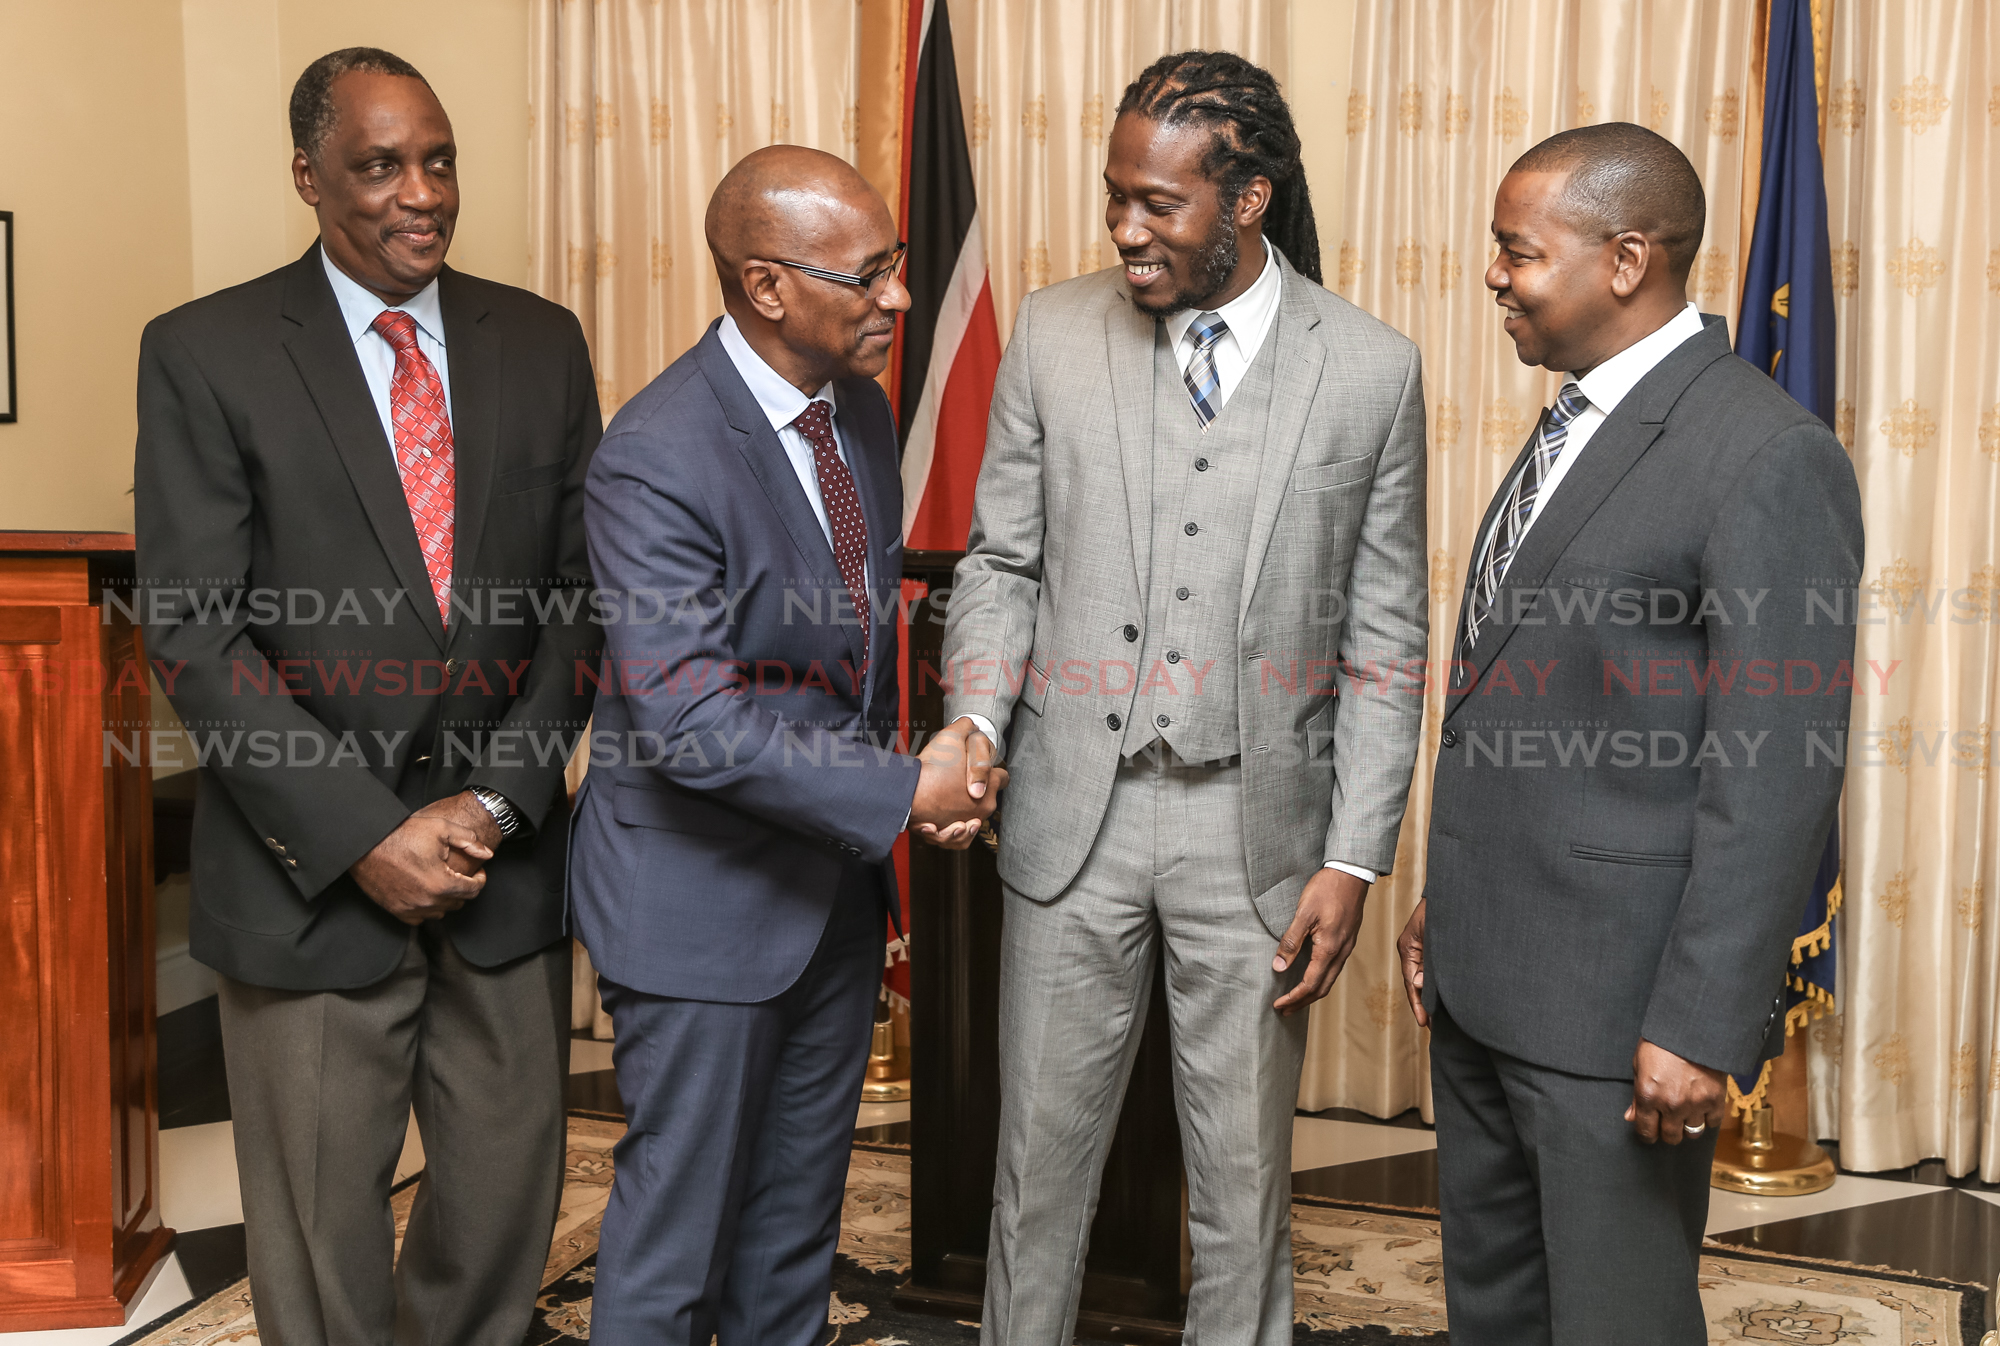 Minister of public utilities Robert LeHunte welcomes new parliamentary secretary in Ministry of Public Utilities Adrian Leonce. Also in phoeo, MP Brigadier General Ancil Antoine (Ret.) at left and right, senator Foster Cummings at Presidents House, St Ann's.   Photo: Jeff K Mayers